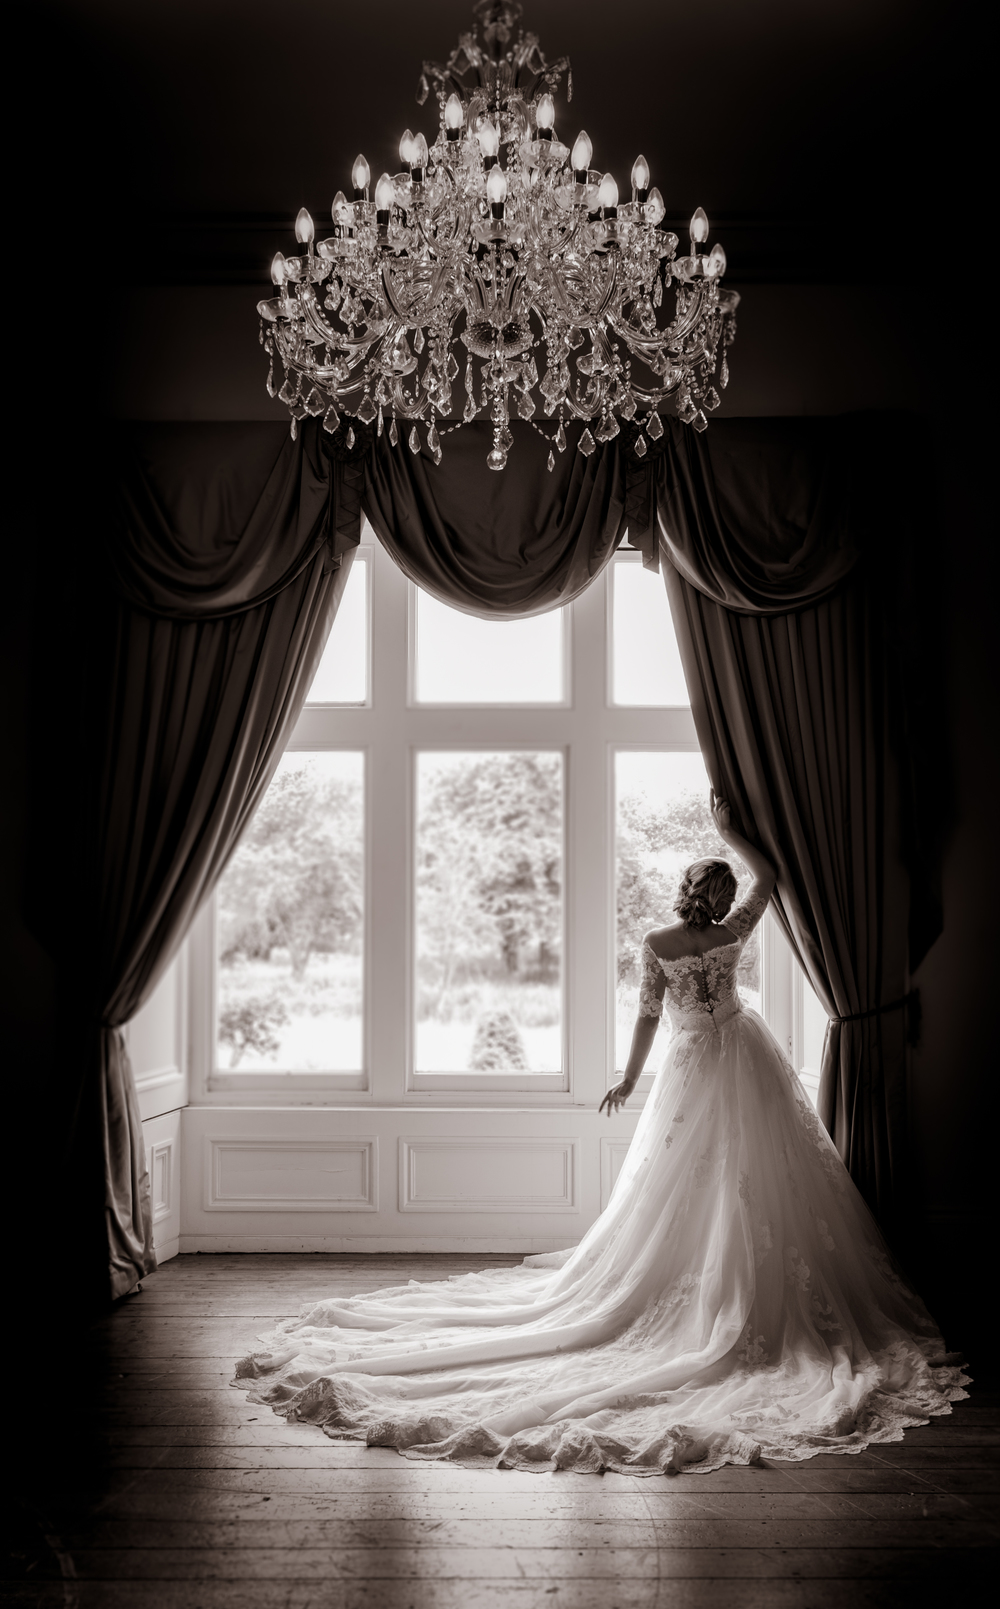 Simply stunning, Richards framing of the chandelier and Nicole's pose make this photo a work of art!